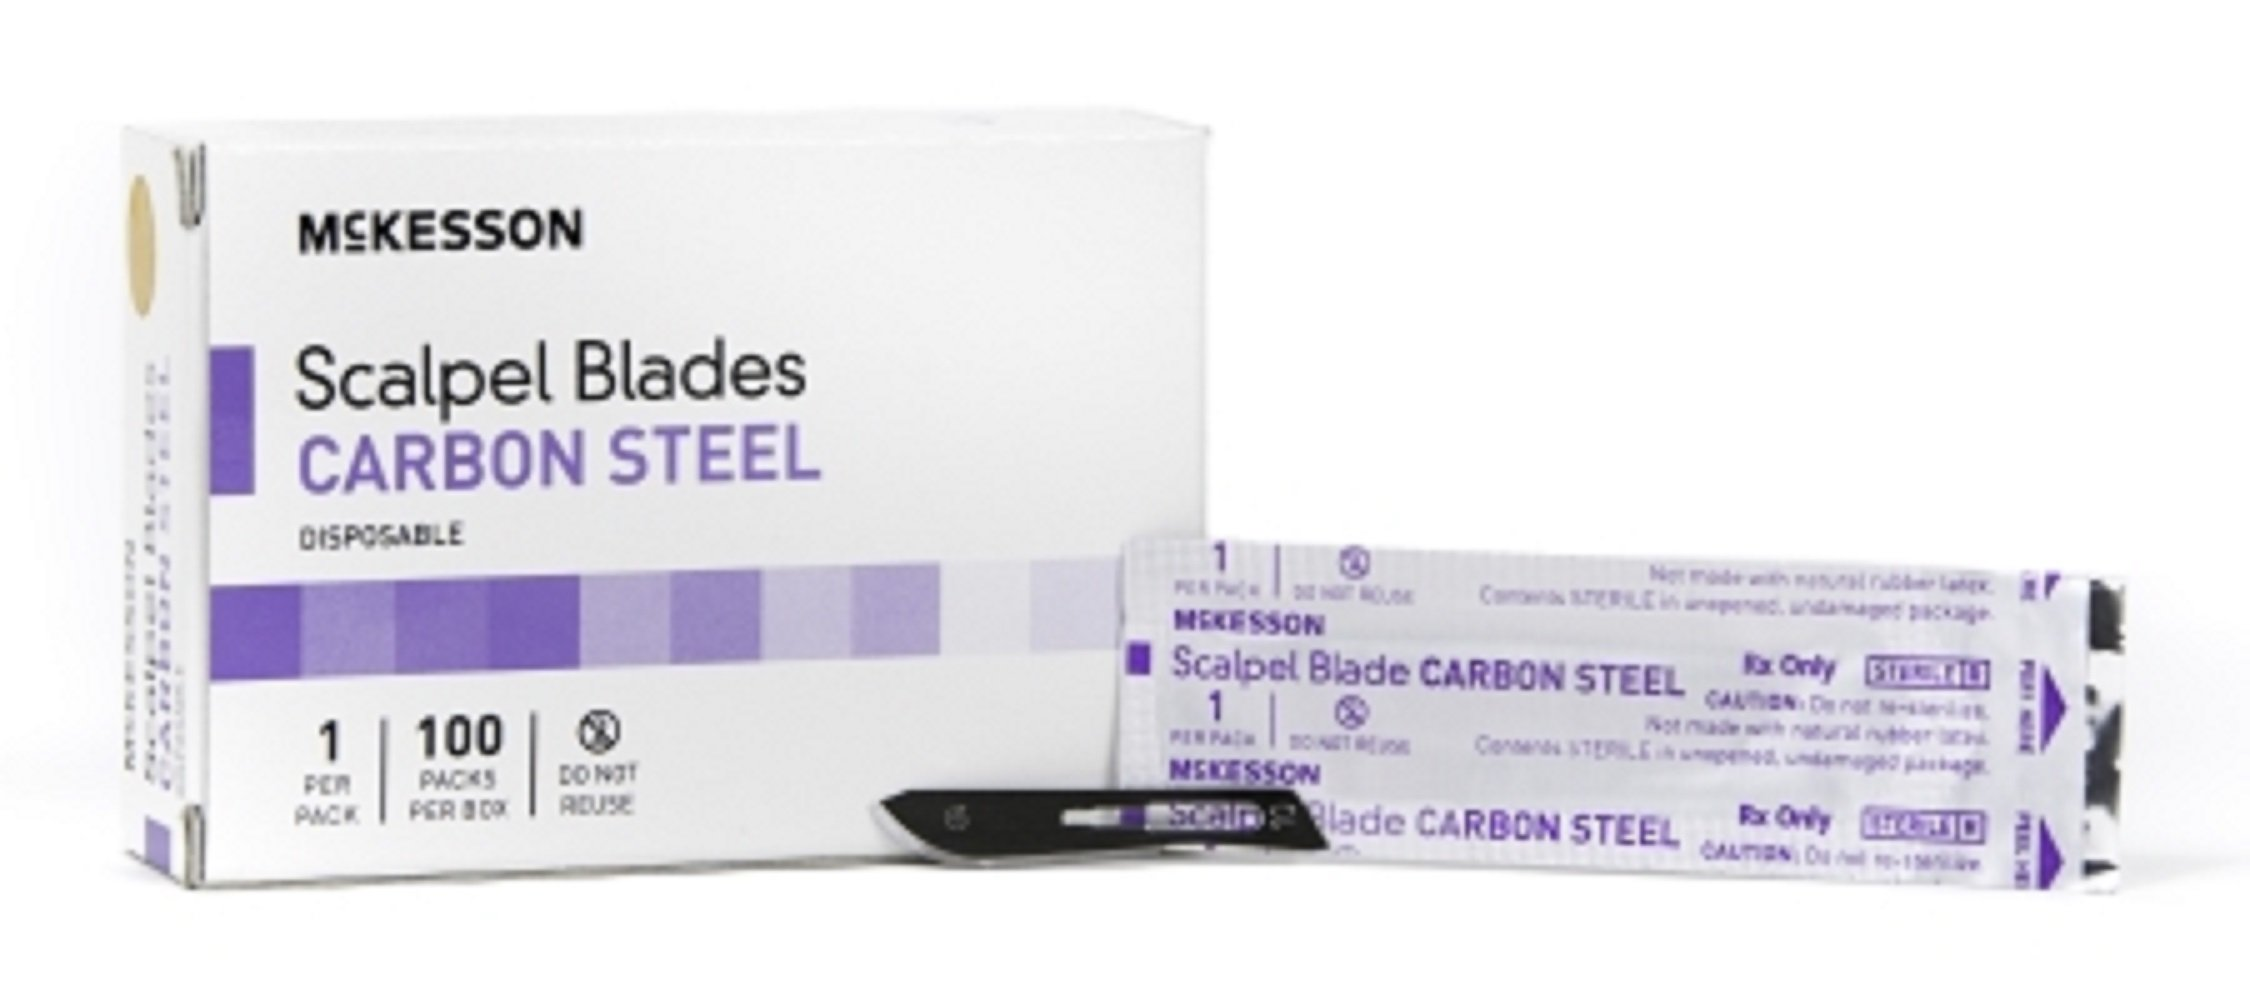 McKesson Brand - Surgical Blade - Carbon Steel - Size 10 - Sterile Disposable - Knife Edge - 1000pcs/Case